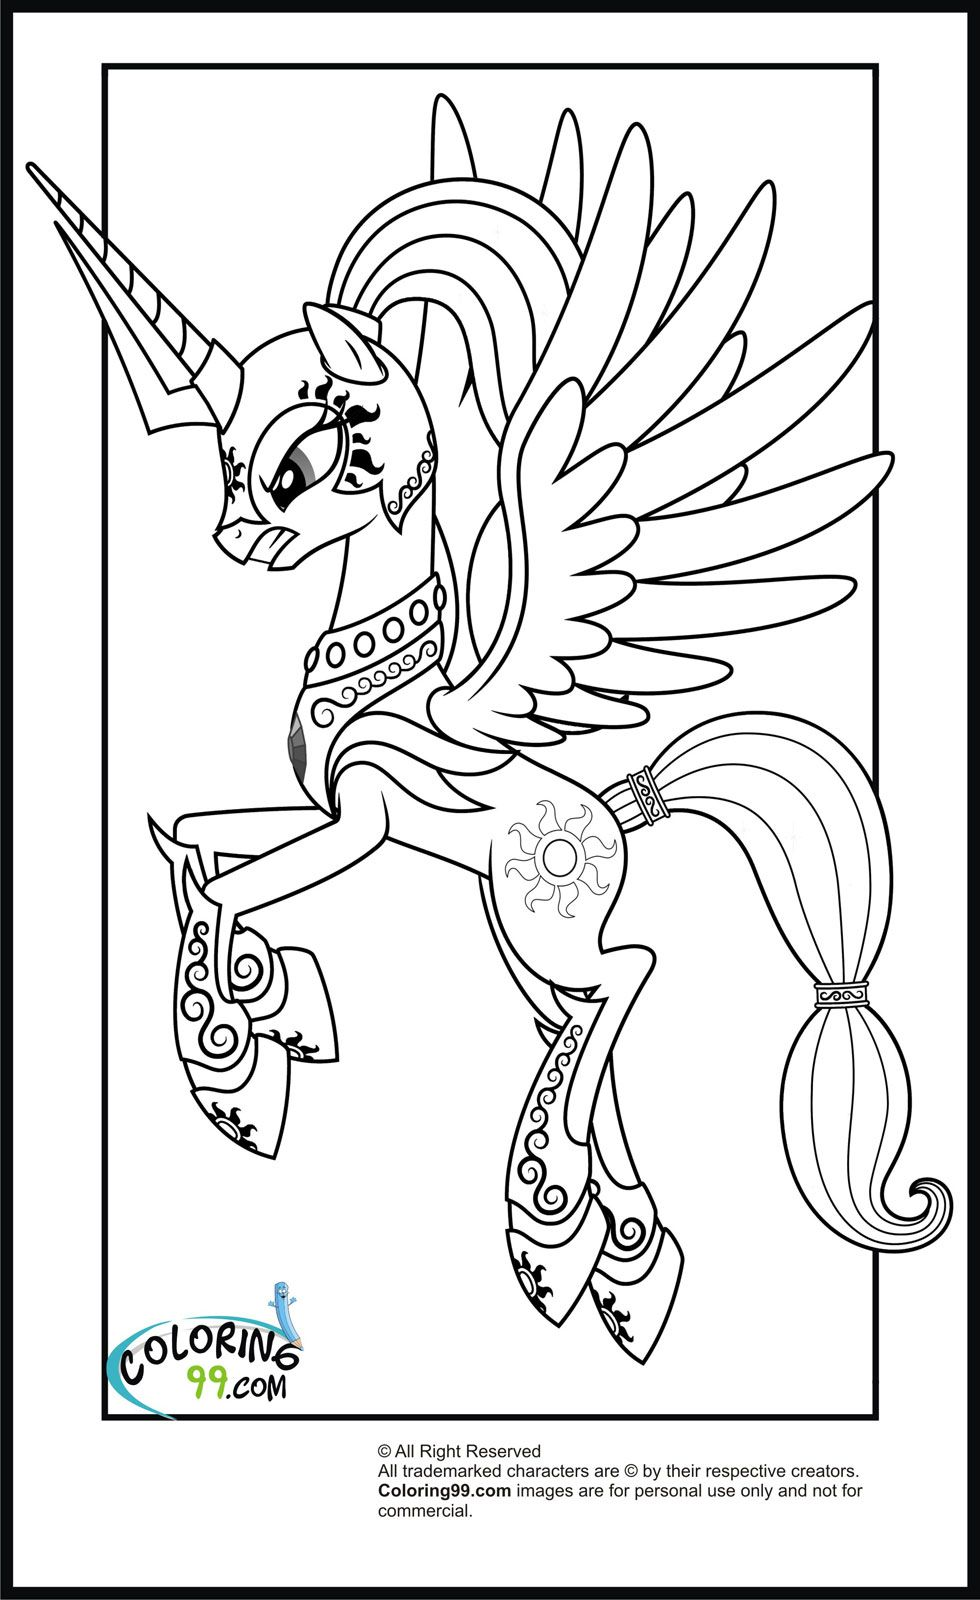 My little pony rainbow rocks coloring pages games - My Little Pony Coloring Pages My Little Pony Princess Celestia Coloring Pages